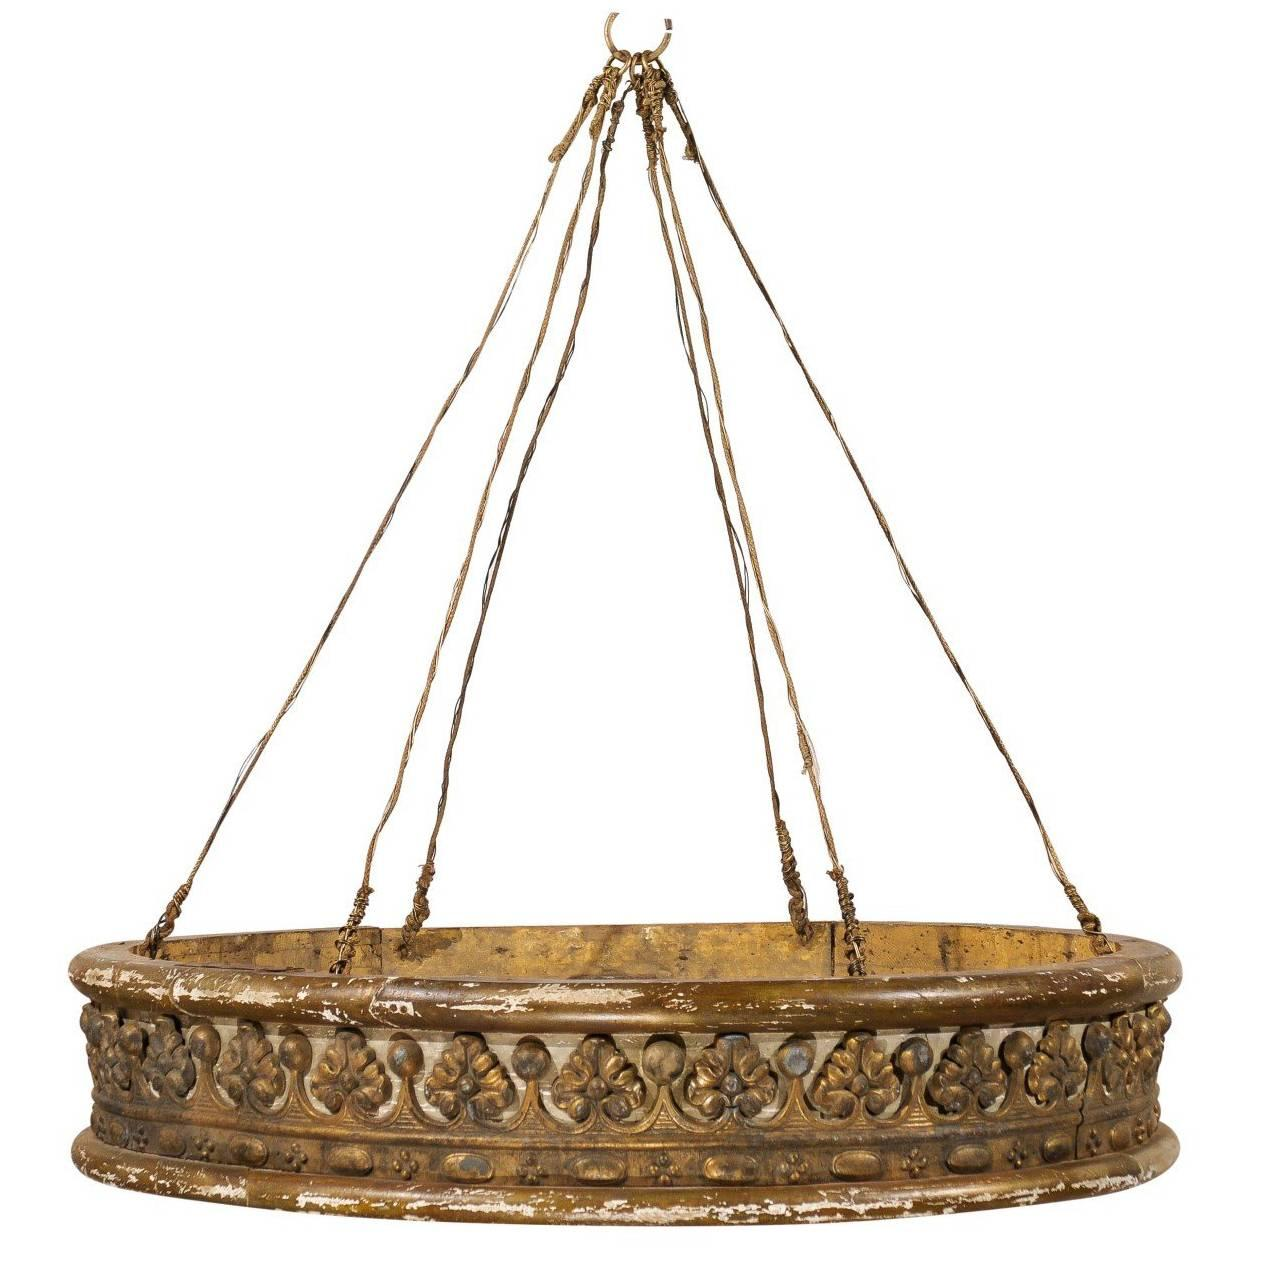 Italian Mid-19th Century Painted & Giltwood Bed Corona / Bed Crown, Large-Size